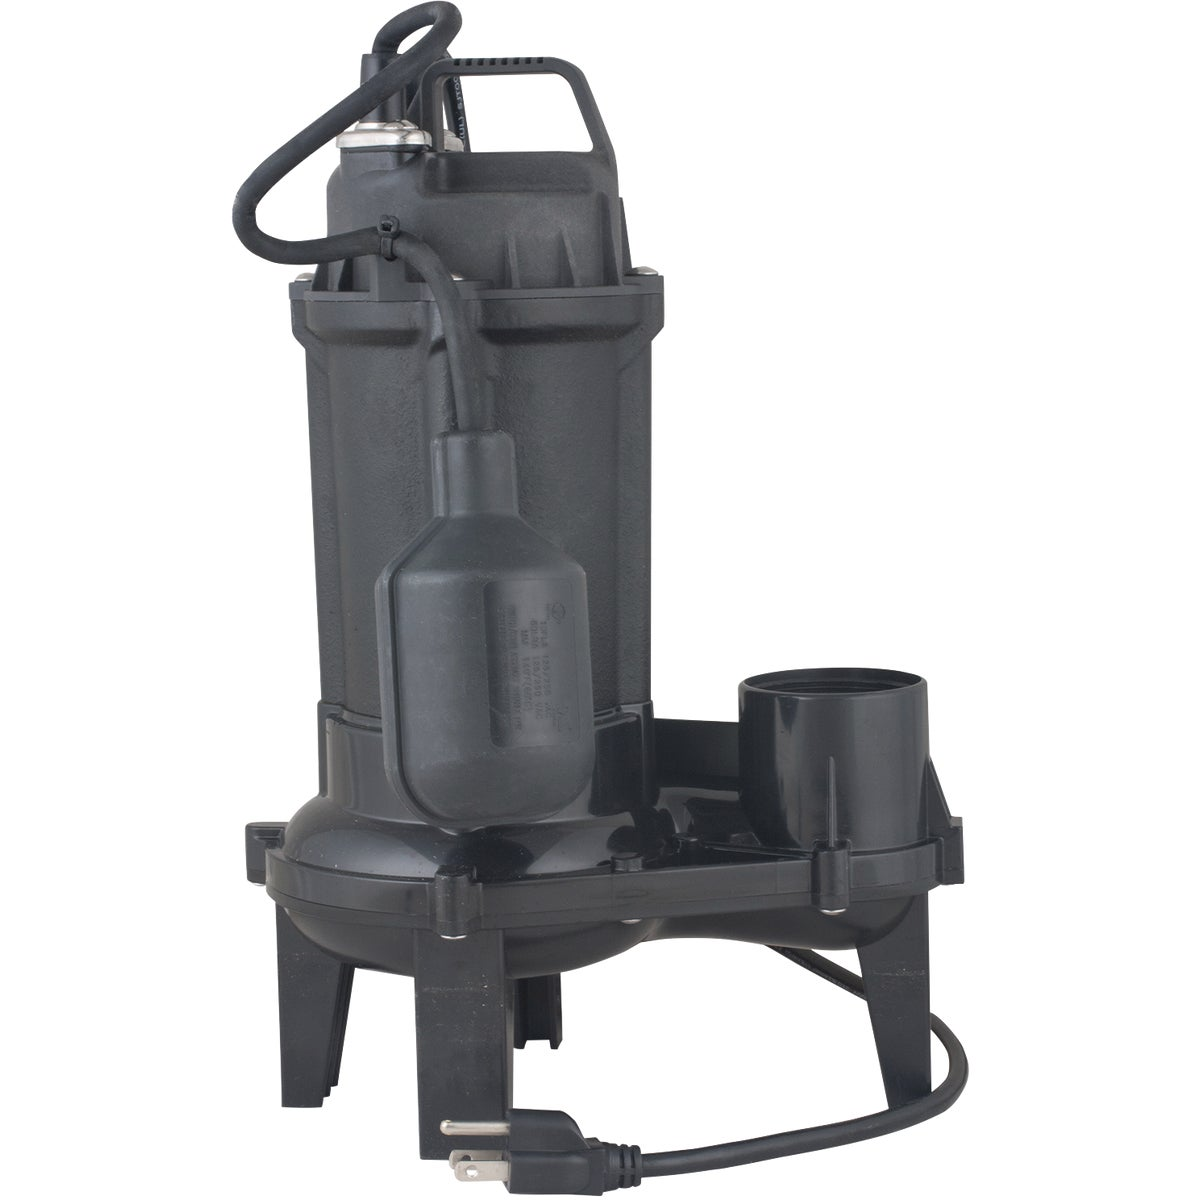 4/10 SEWAGE PUMP - 4EP by Star Water Systems